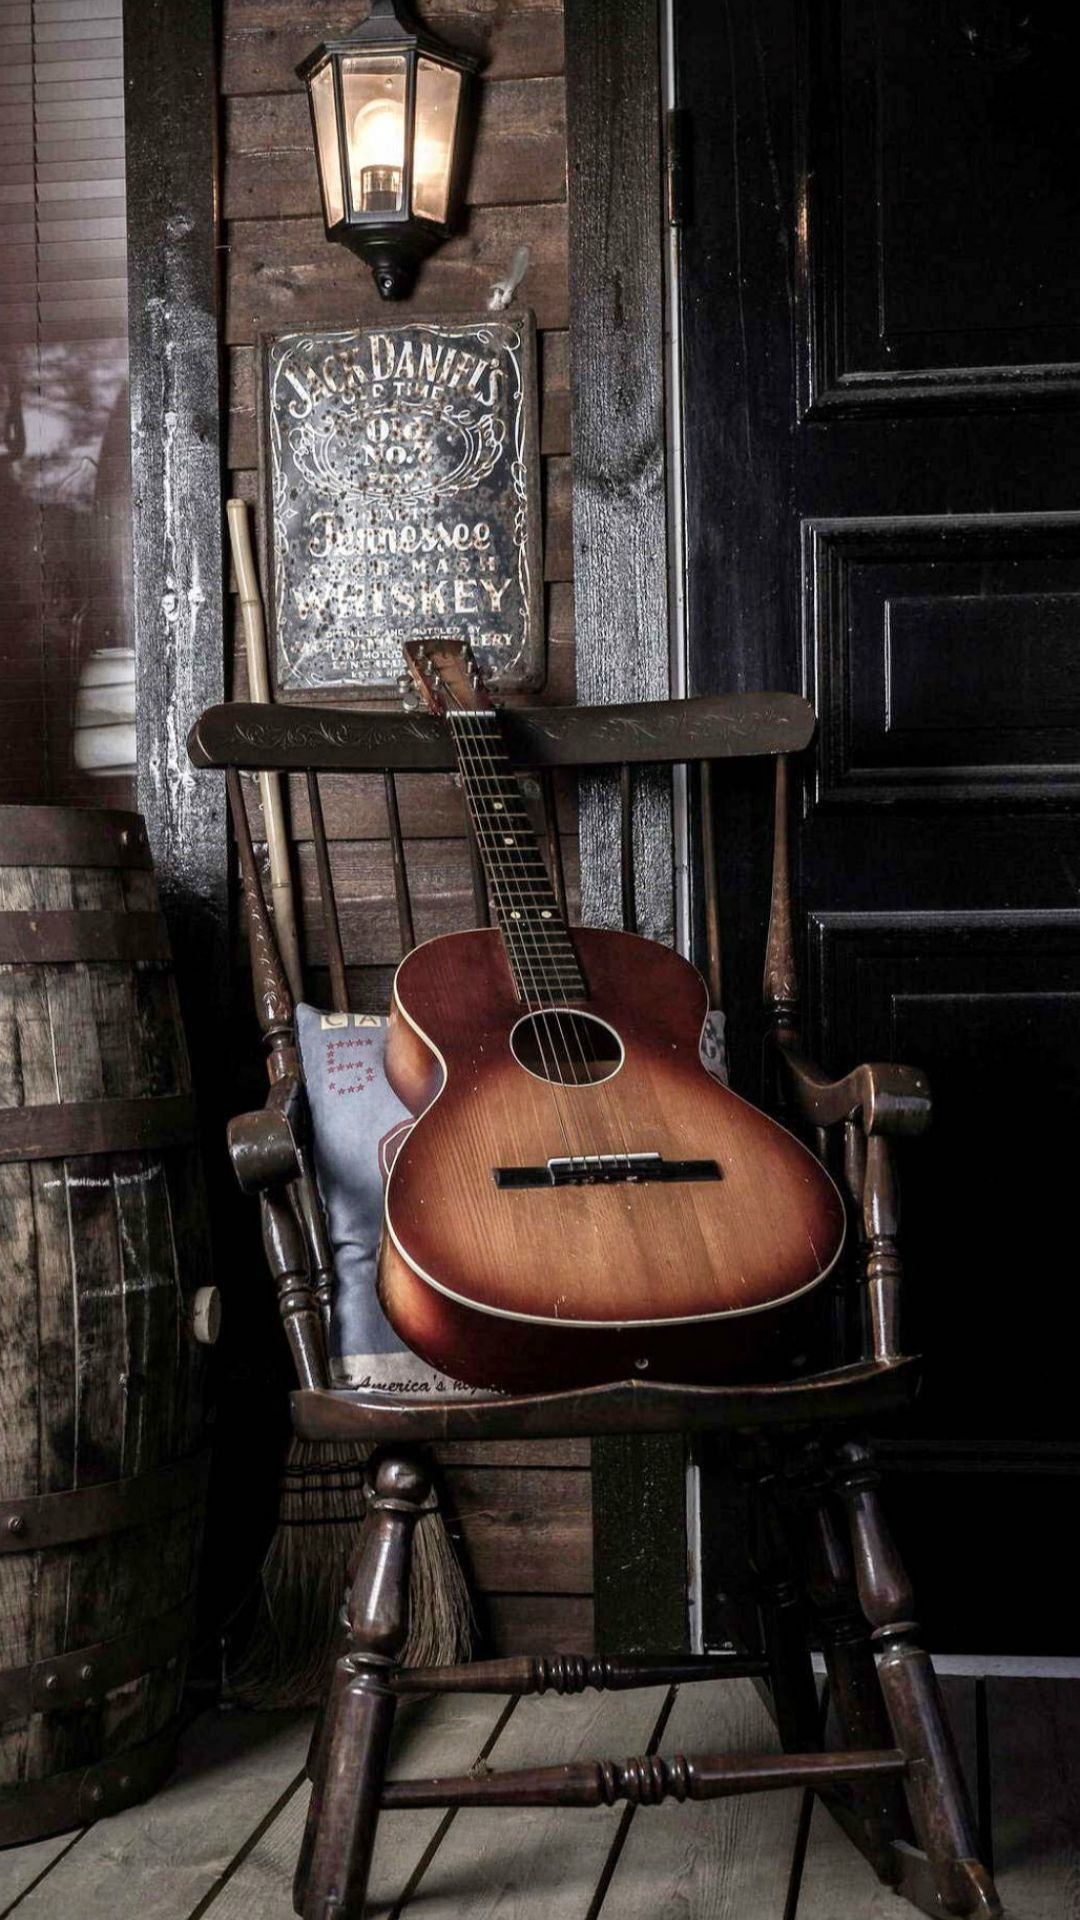 Old Guitar On Chair Iphone 6 Wallpaper Download Iphone Wallpapers Ipad Wallpapers One Stop Do Art Wallpaper Iphone Iphone Wallpaper Vintage Music Wallpaper